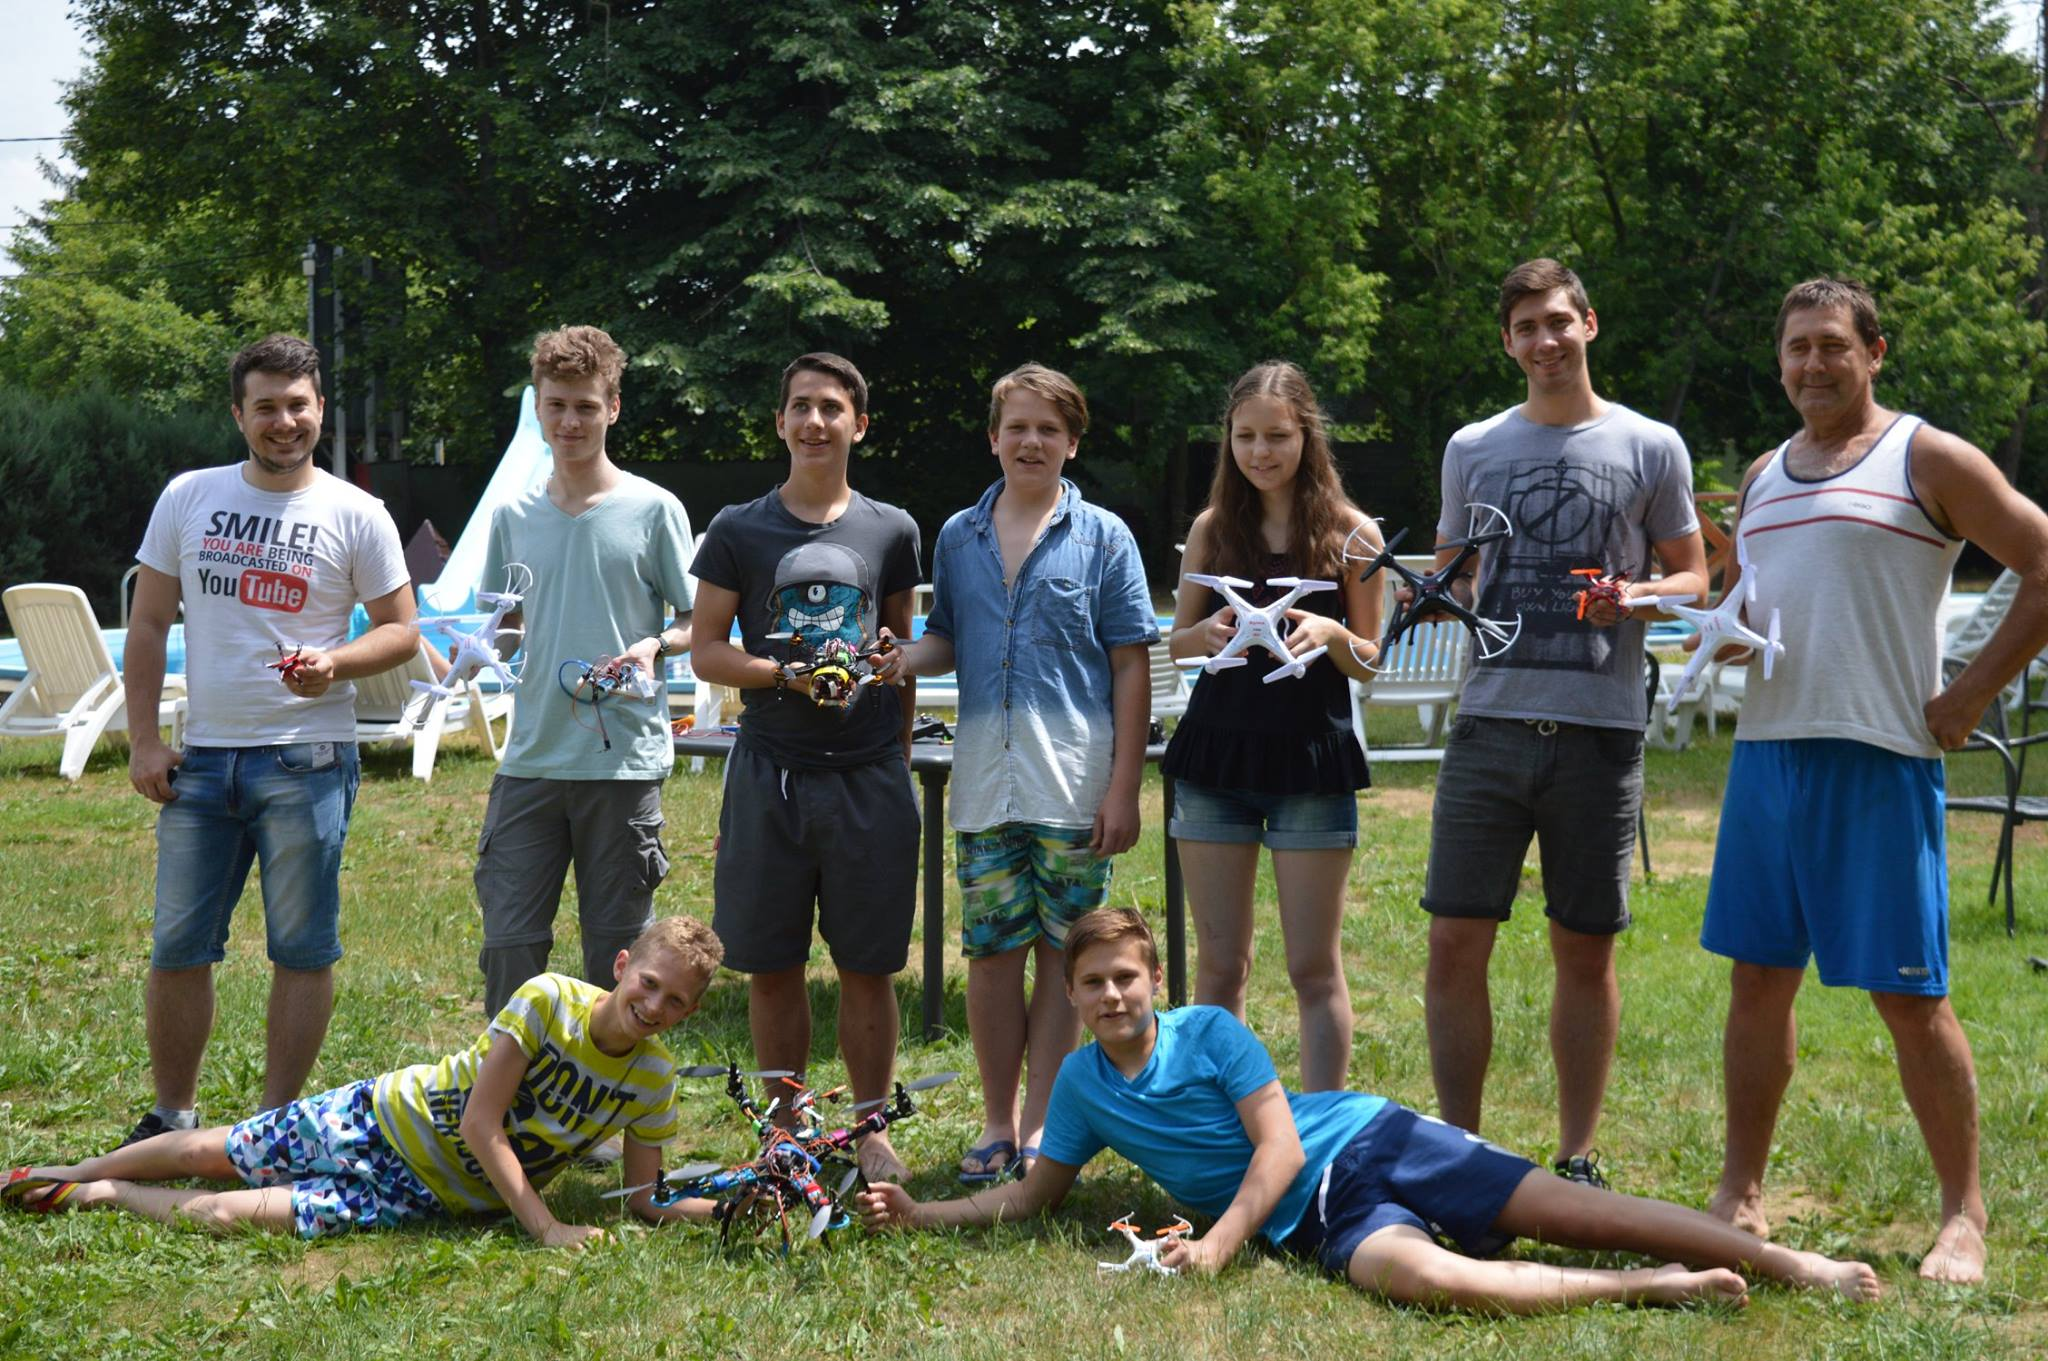 Group photo of campers with their drones